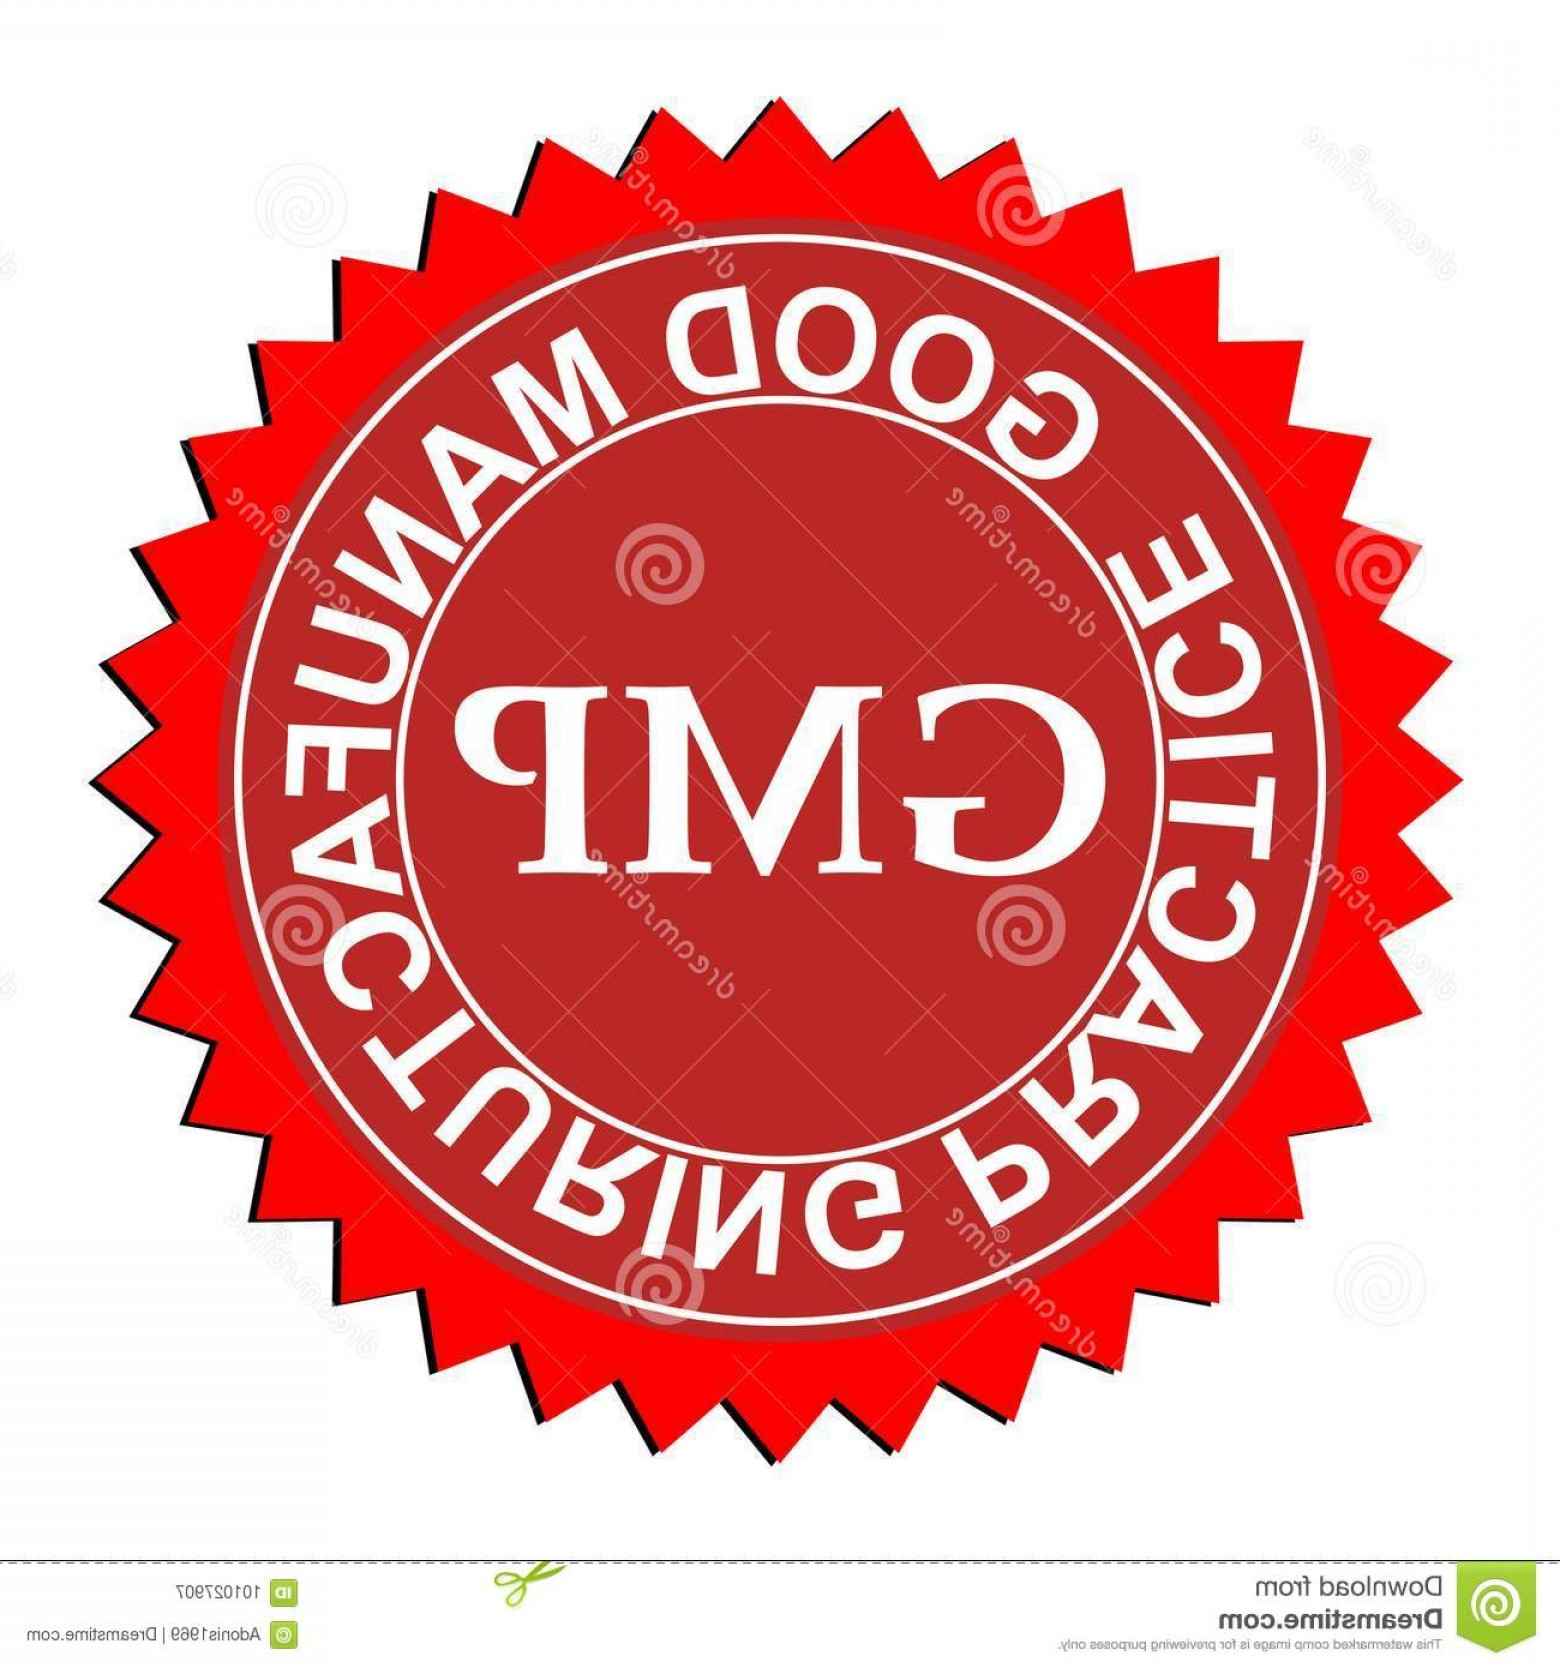 GMP Logo Vector: Red White Seal Stamp Graphic White Text Gmp Good Manufacturing Practice Good Manufacturing Practice Logo Image